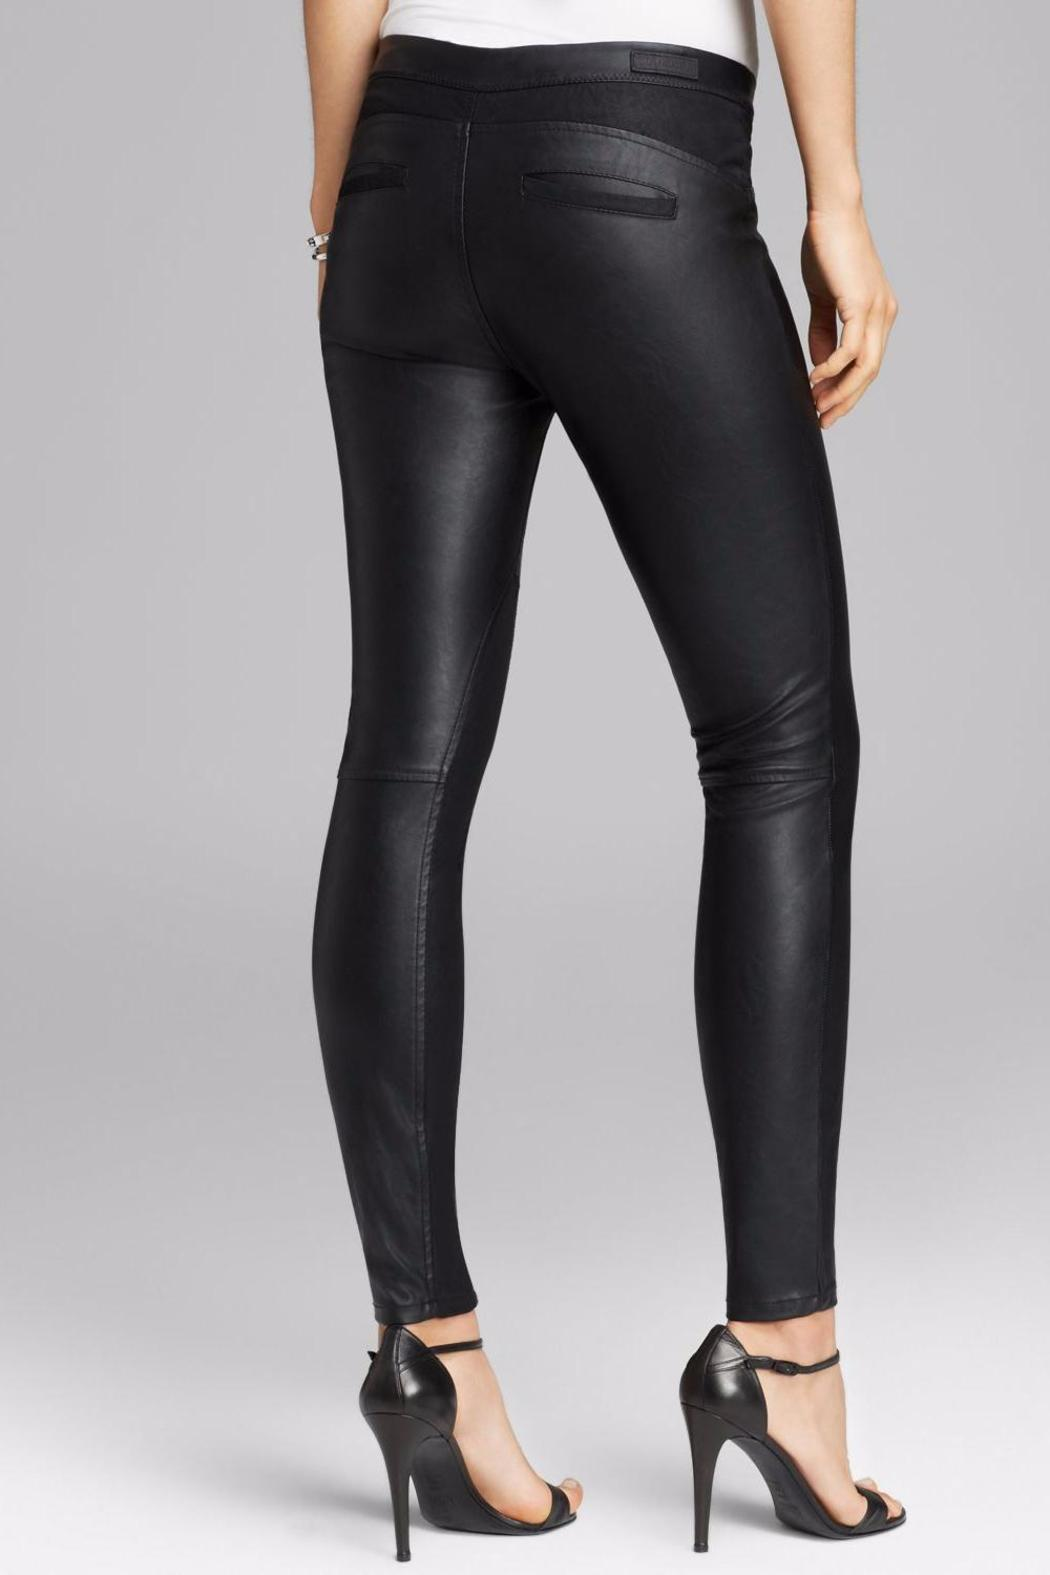 Blanknyc Vegan Leather Leggings From New Jersey By Alba